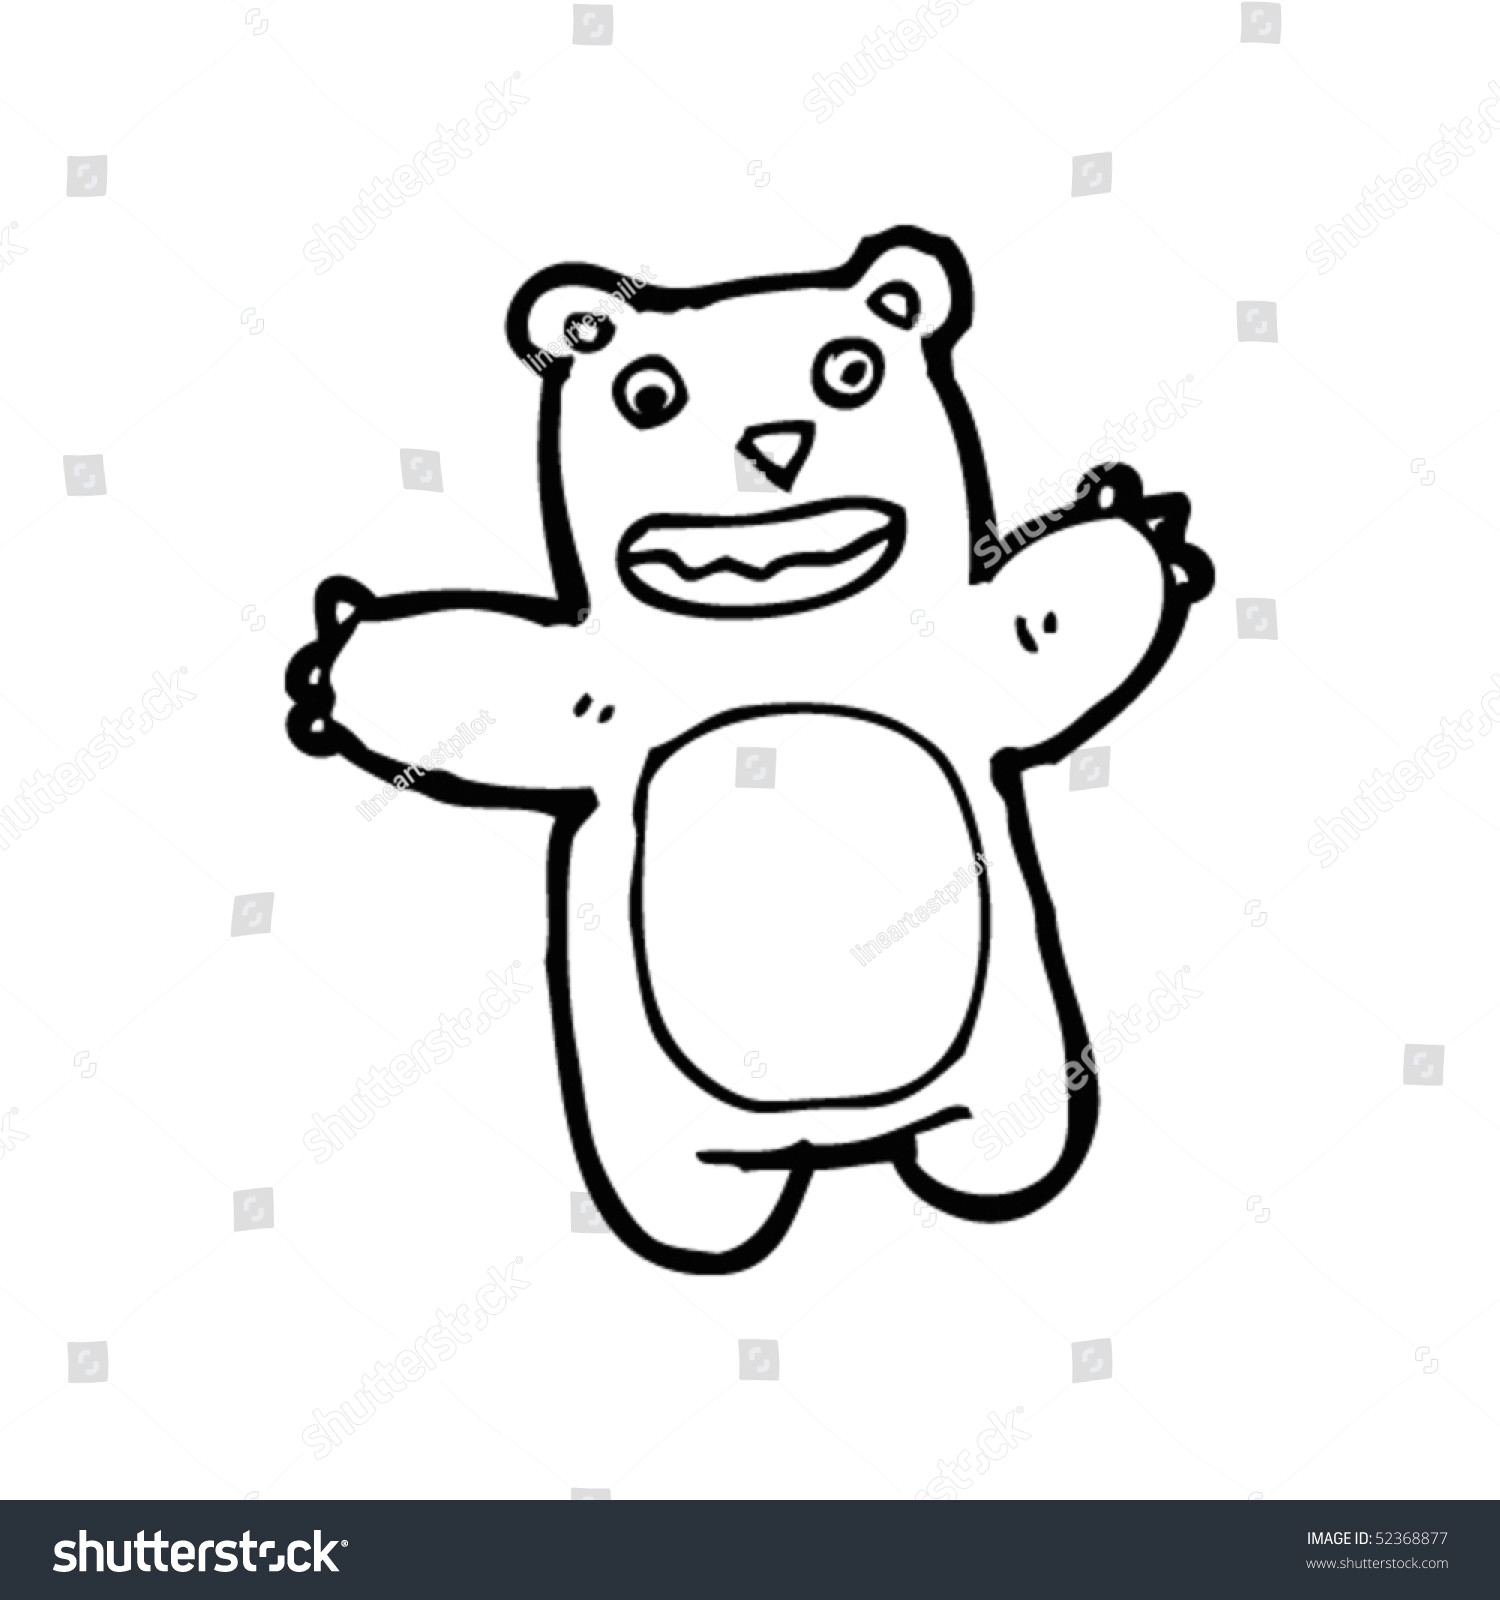 stock vector quirky drawing of a teddy bear 52368877 jpg